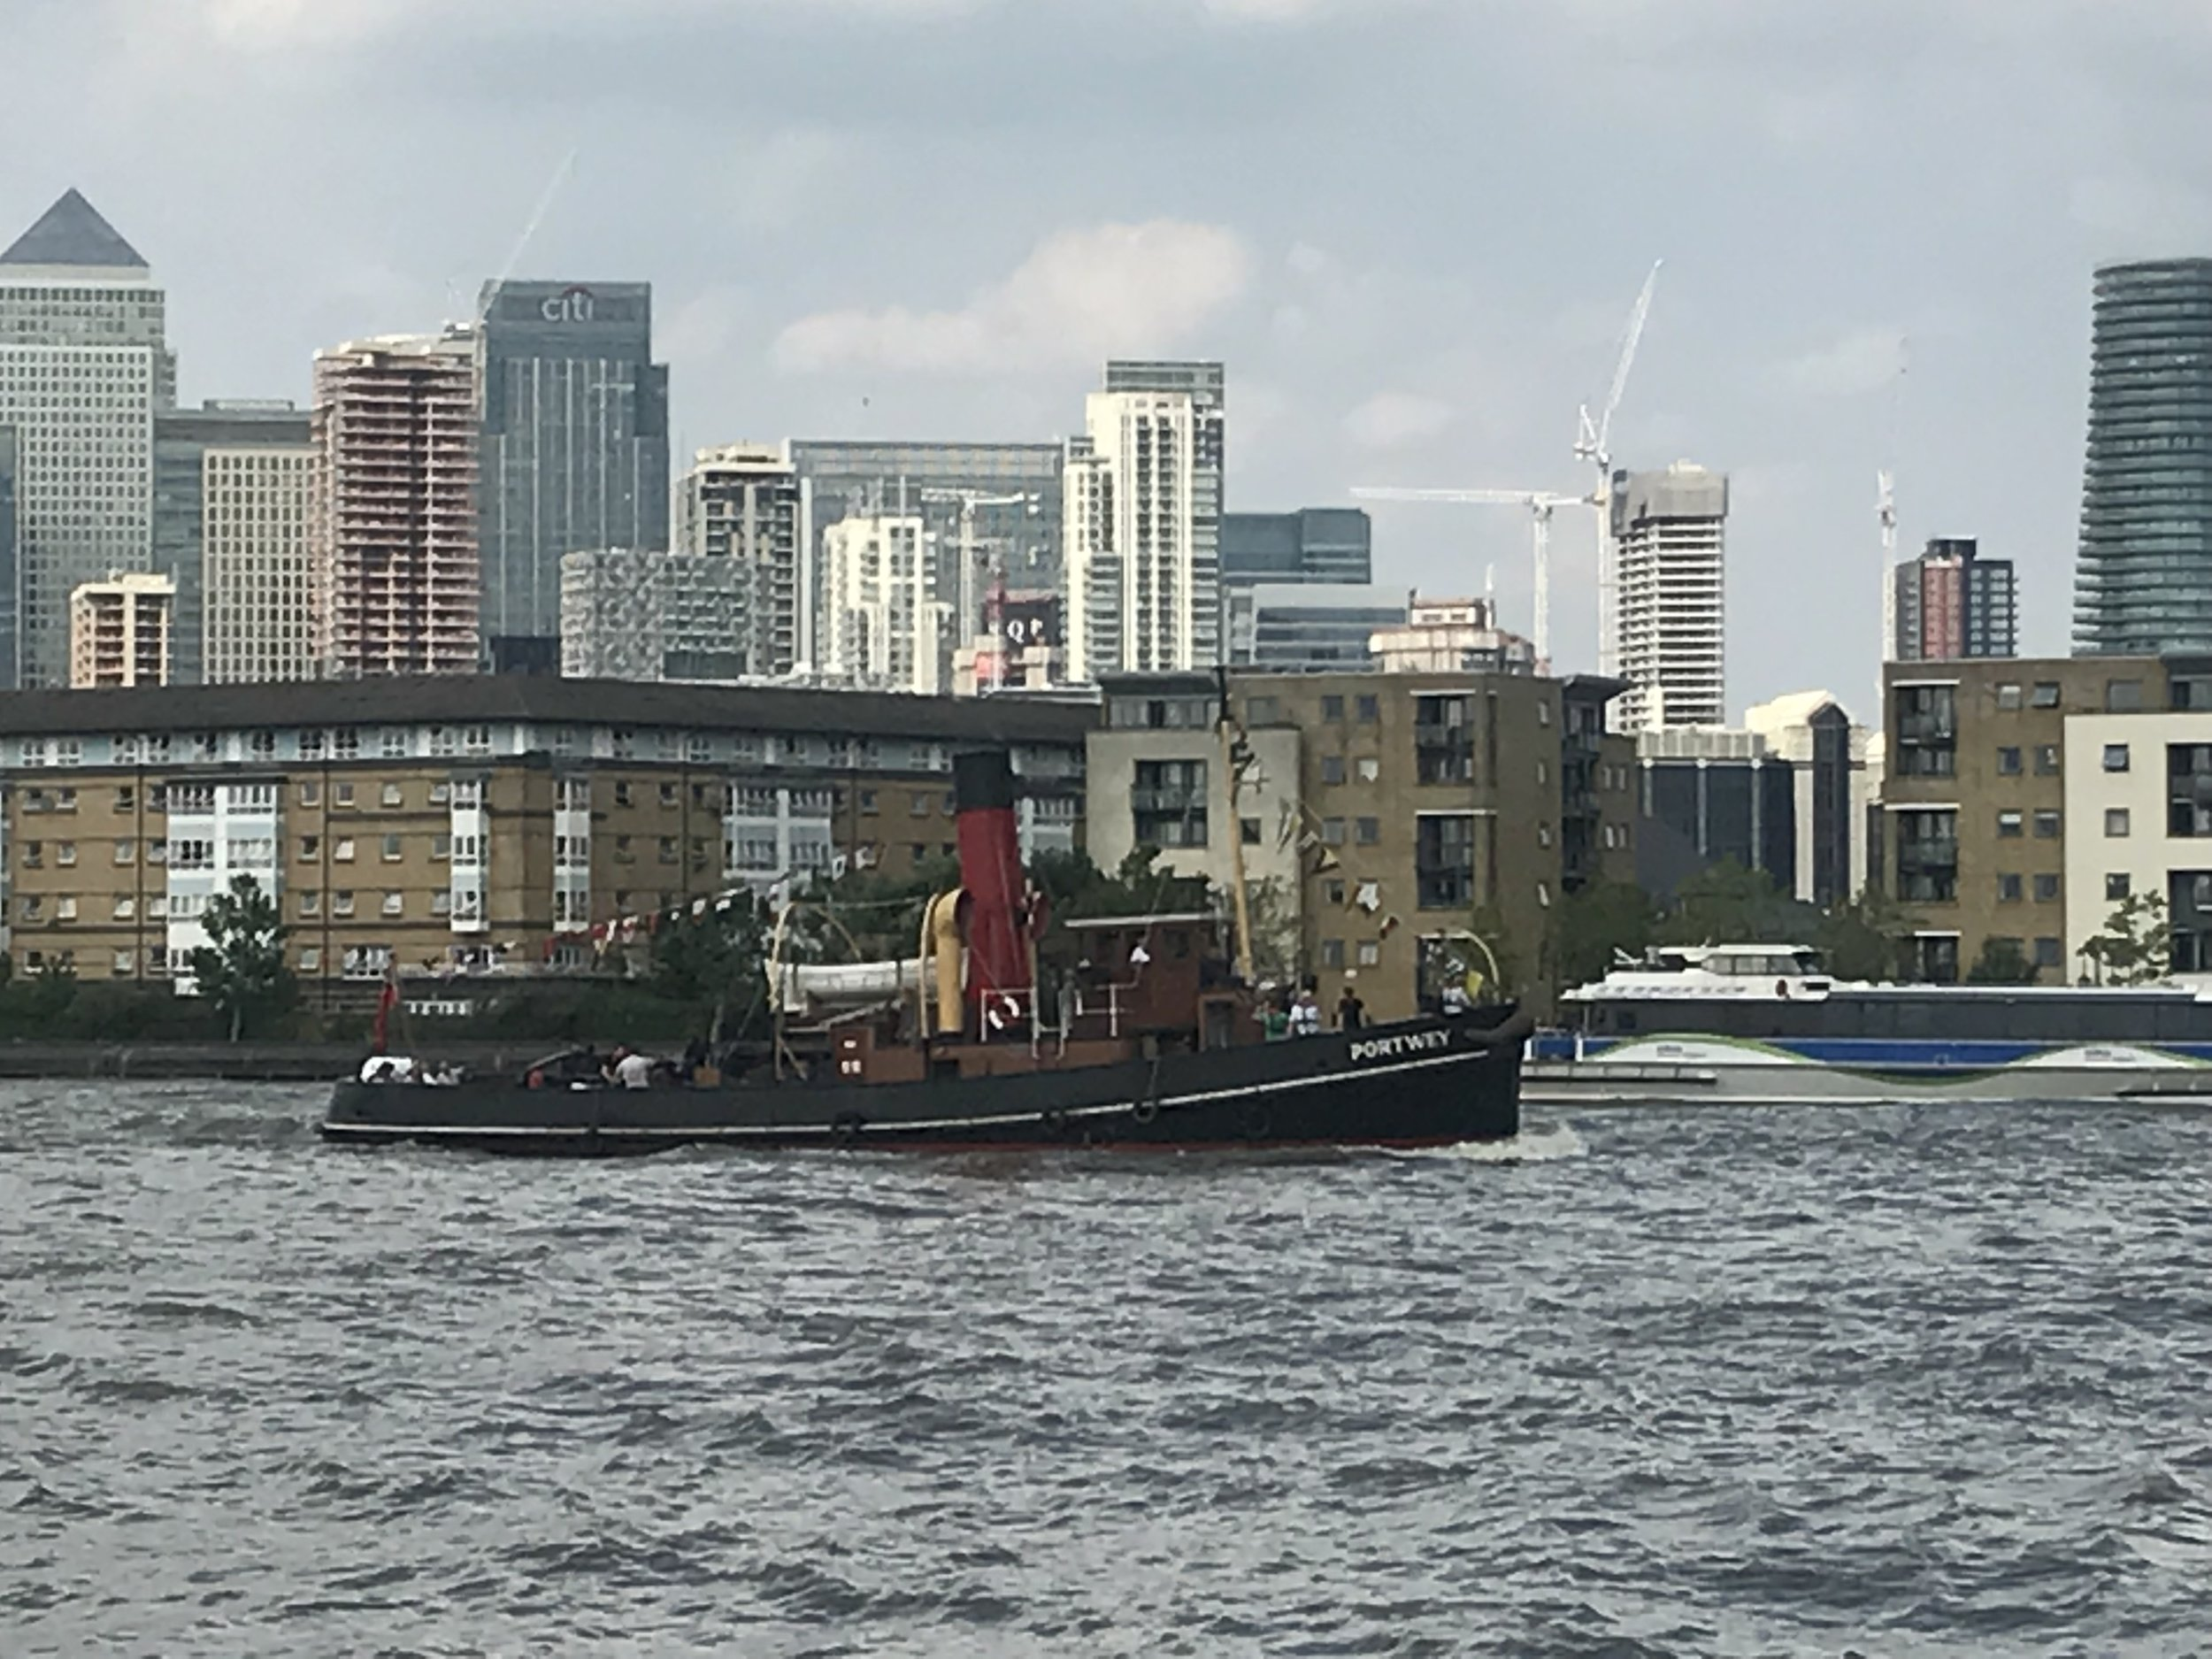 Canary Wharf from Across the Thames